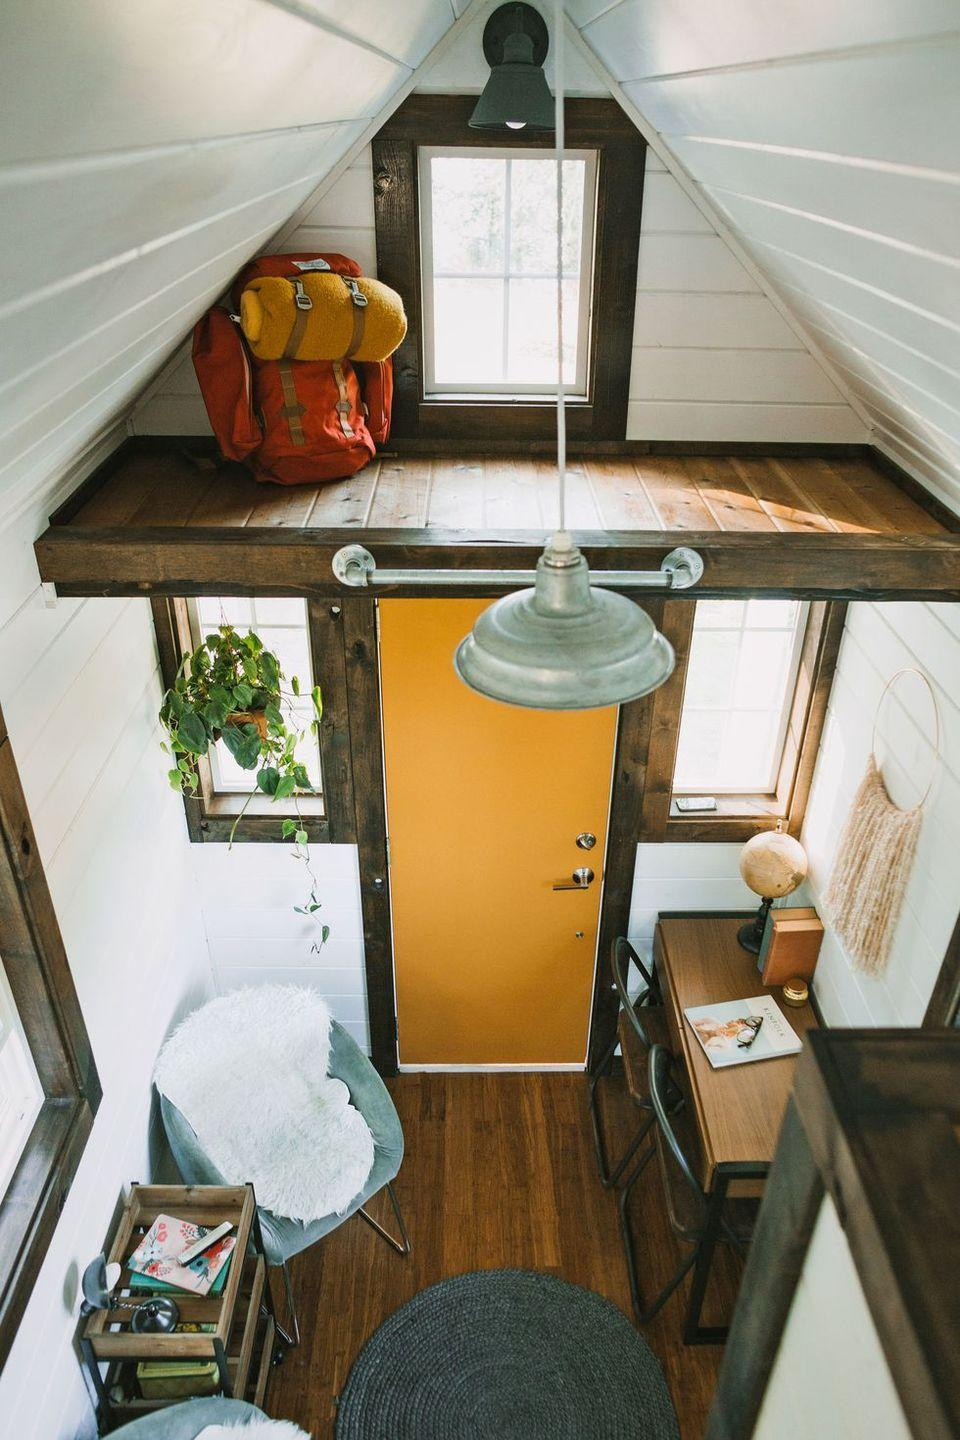 <p>Michelle and Tyson Spiess used top-of-the-line materials, fixtures, and finishes to create their space that doesn't skimp on style or quality.</p>